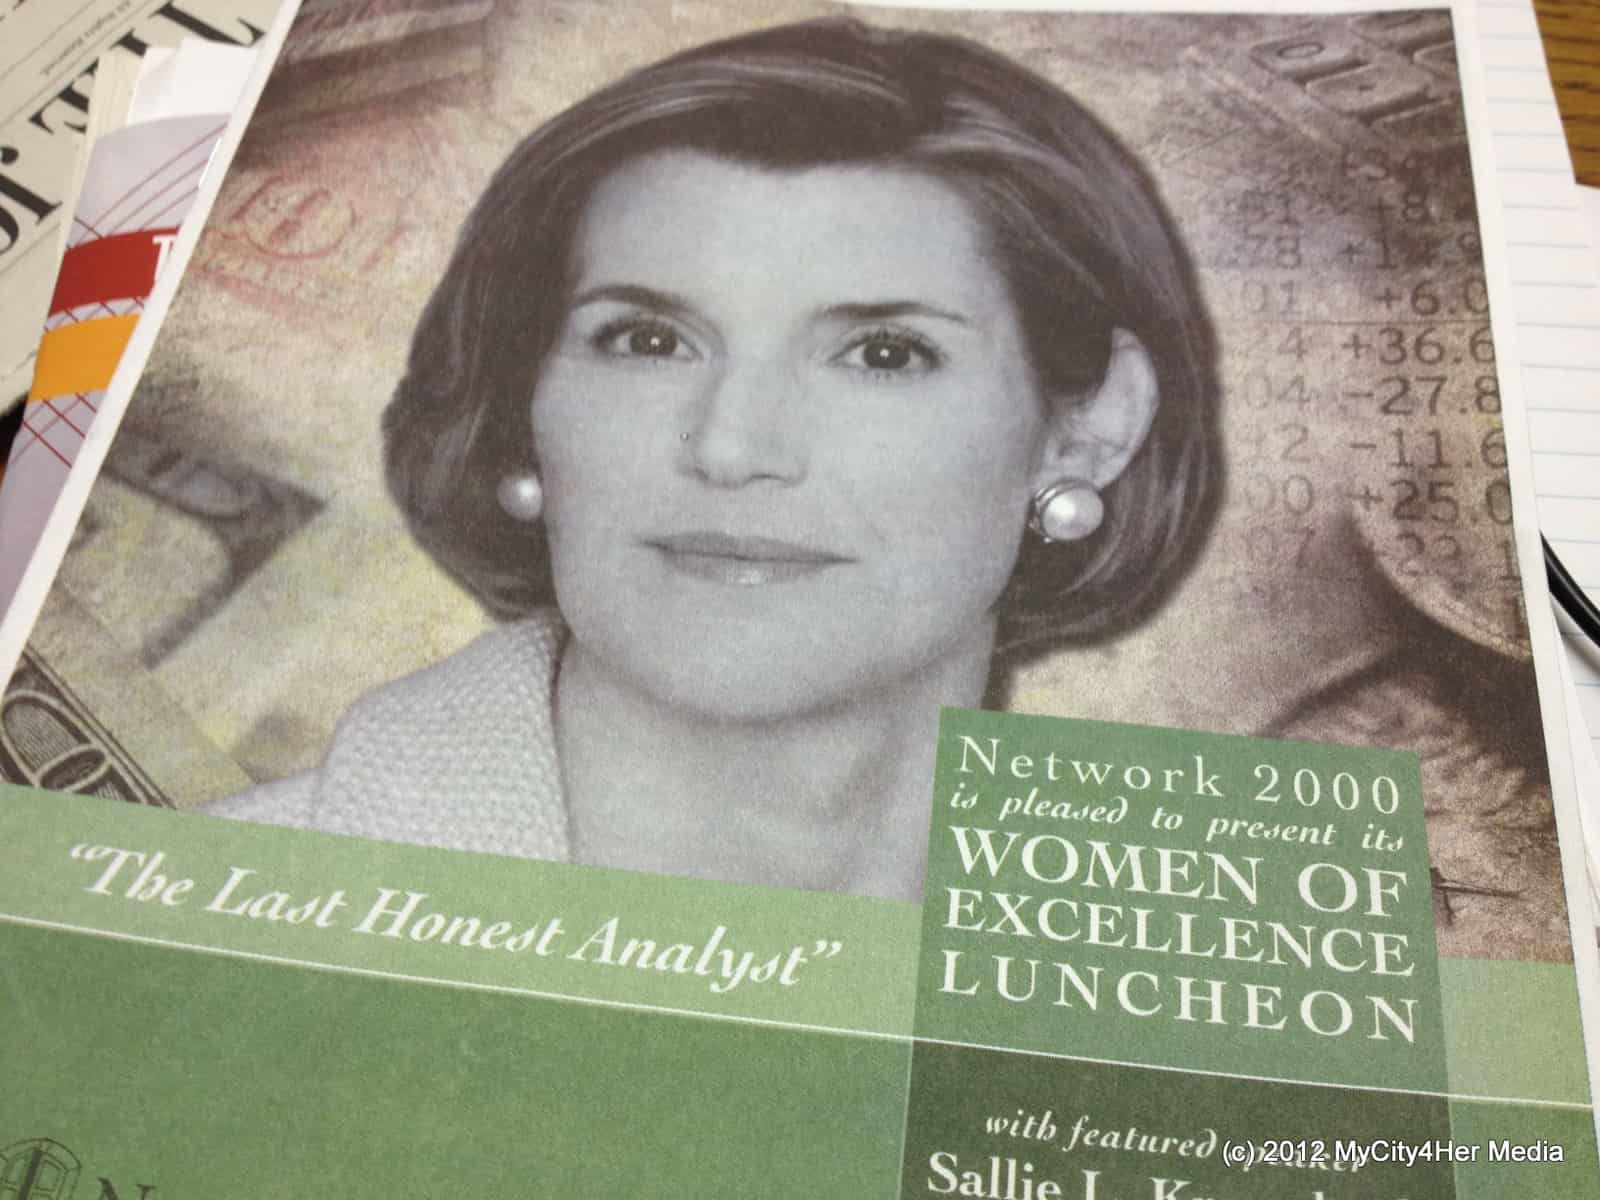 Network 2000 Women of Excellence Luncheon Program Cover